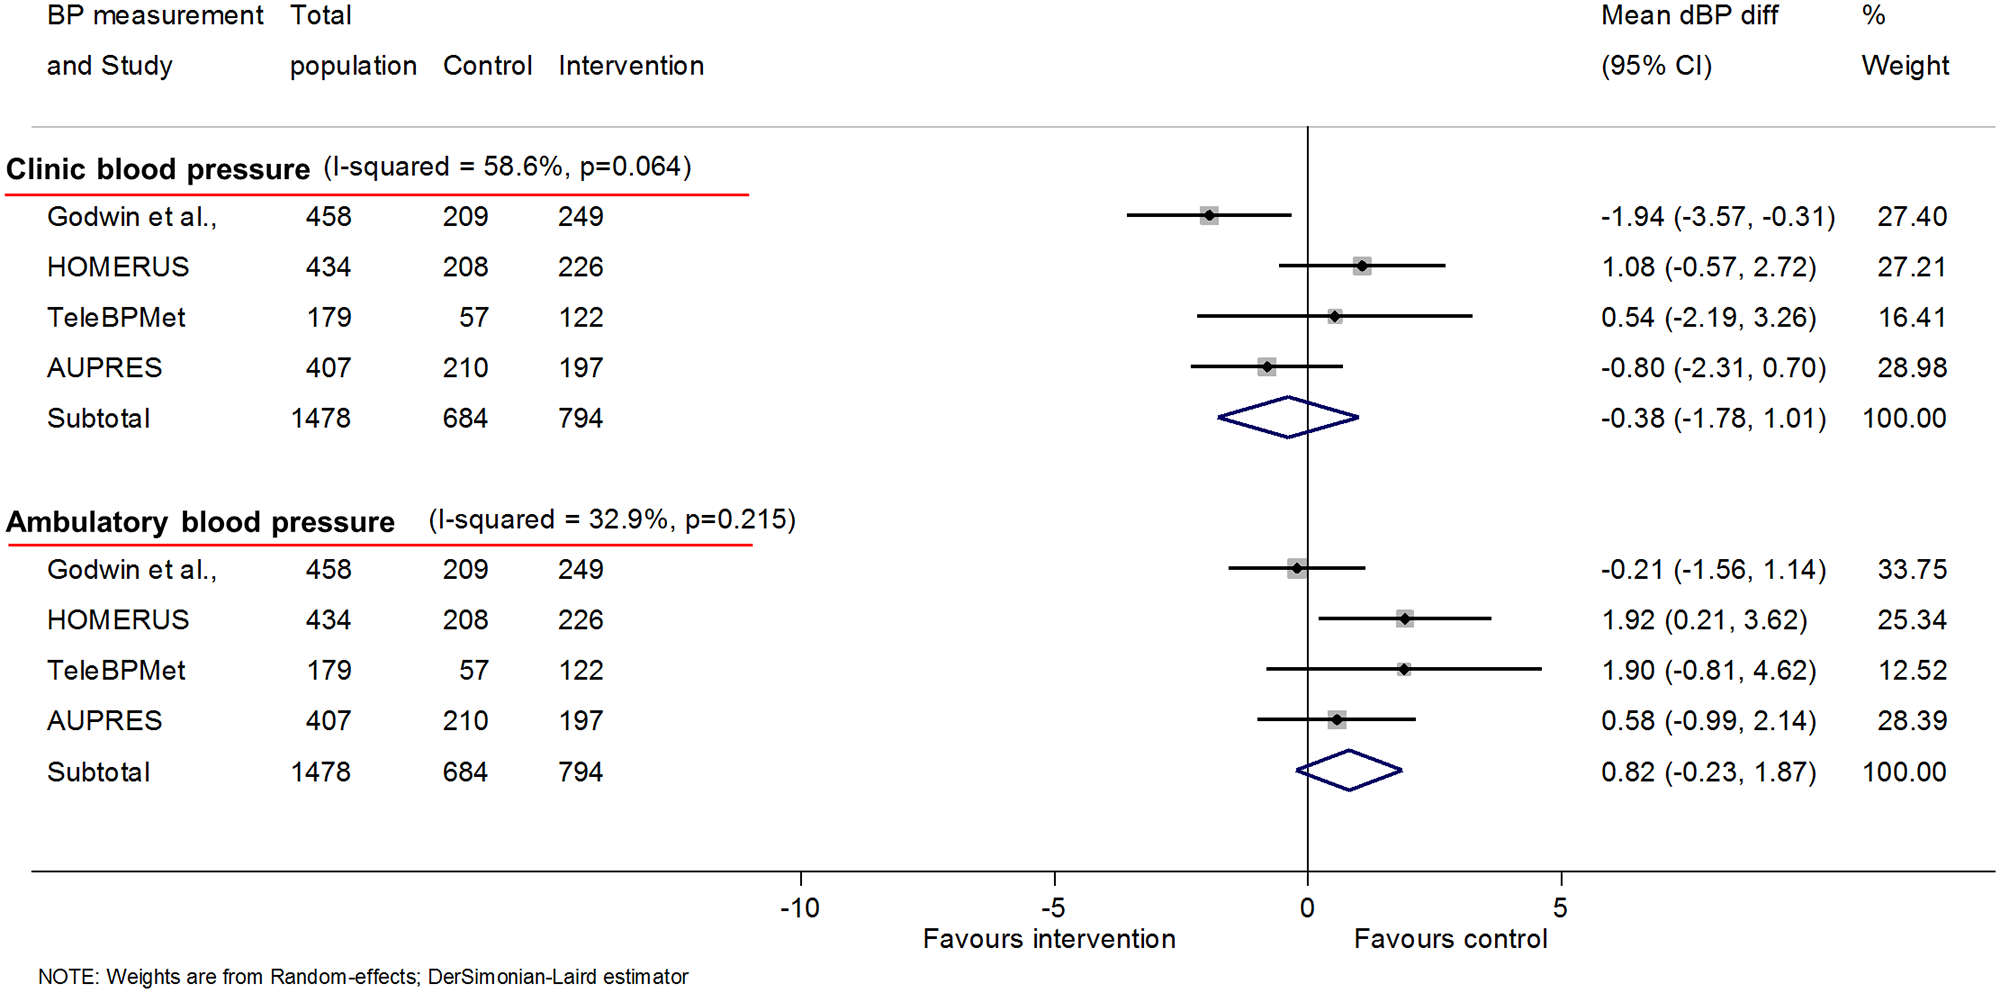 Impact of self-monitoring of BP on clinic and ambulatory dBP at 12 months (4 studies).